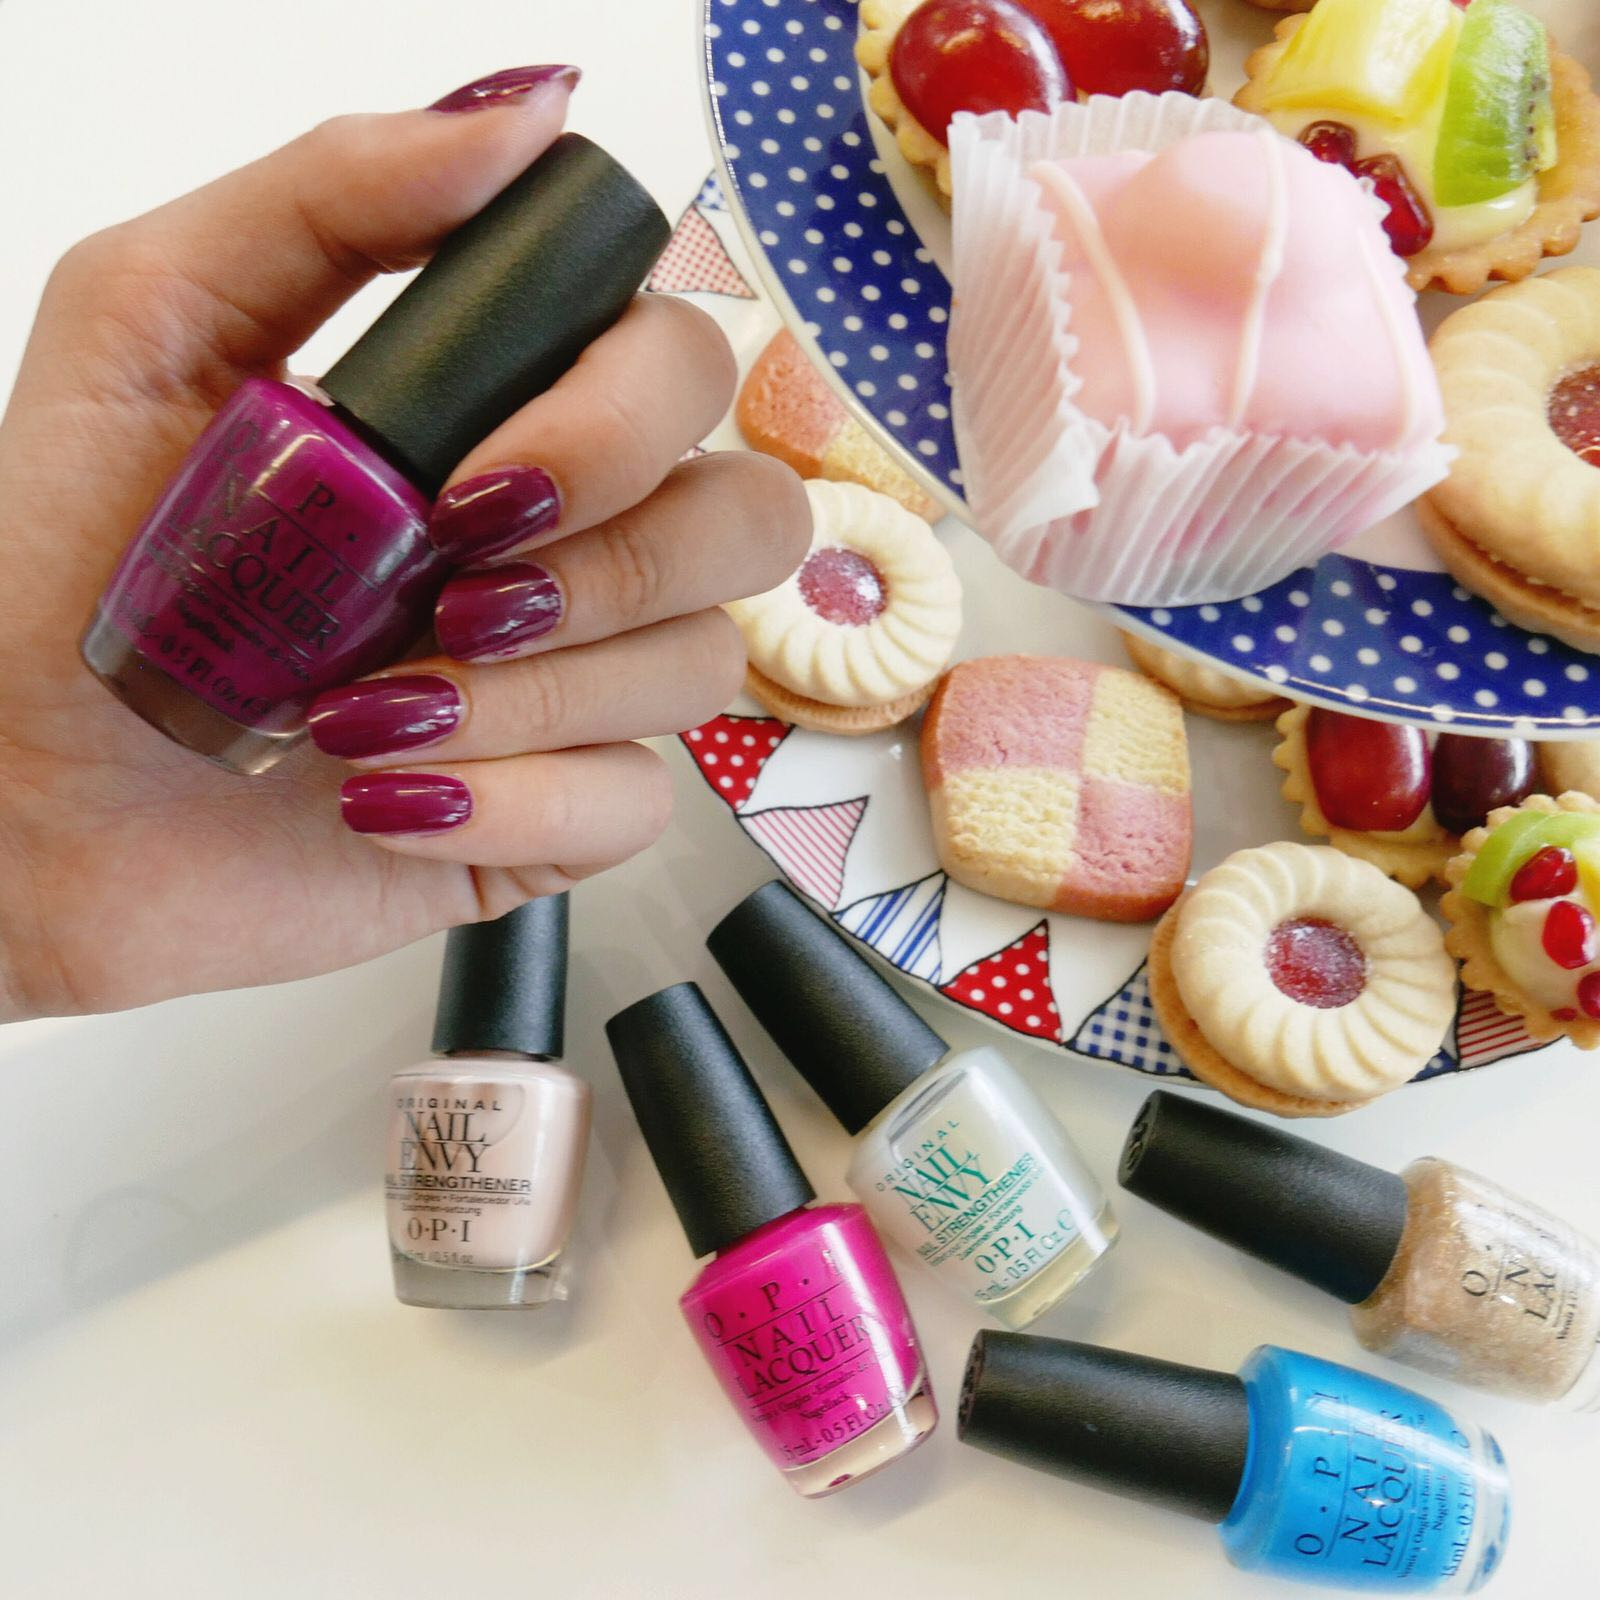 OPI and QVC have gone positively MAD! - OPI UK